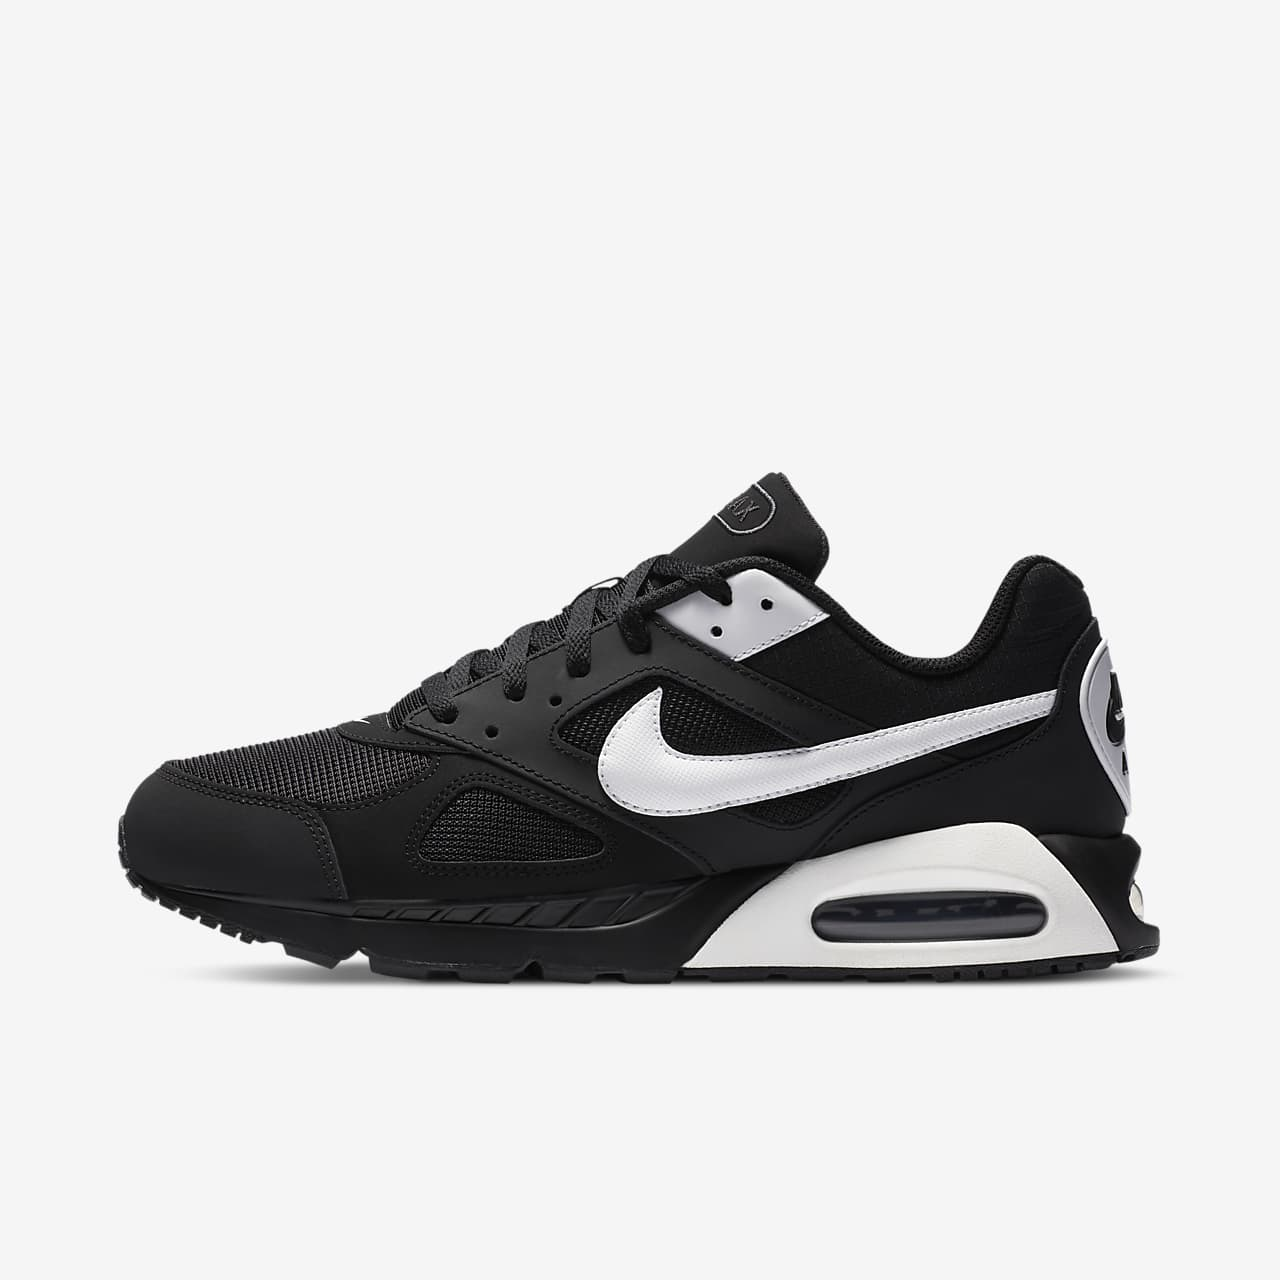 buy popular 489a2 c1635 Chaussure Nike Air Max IVO pour Homme